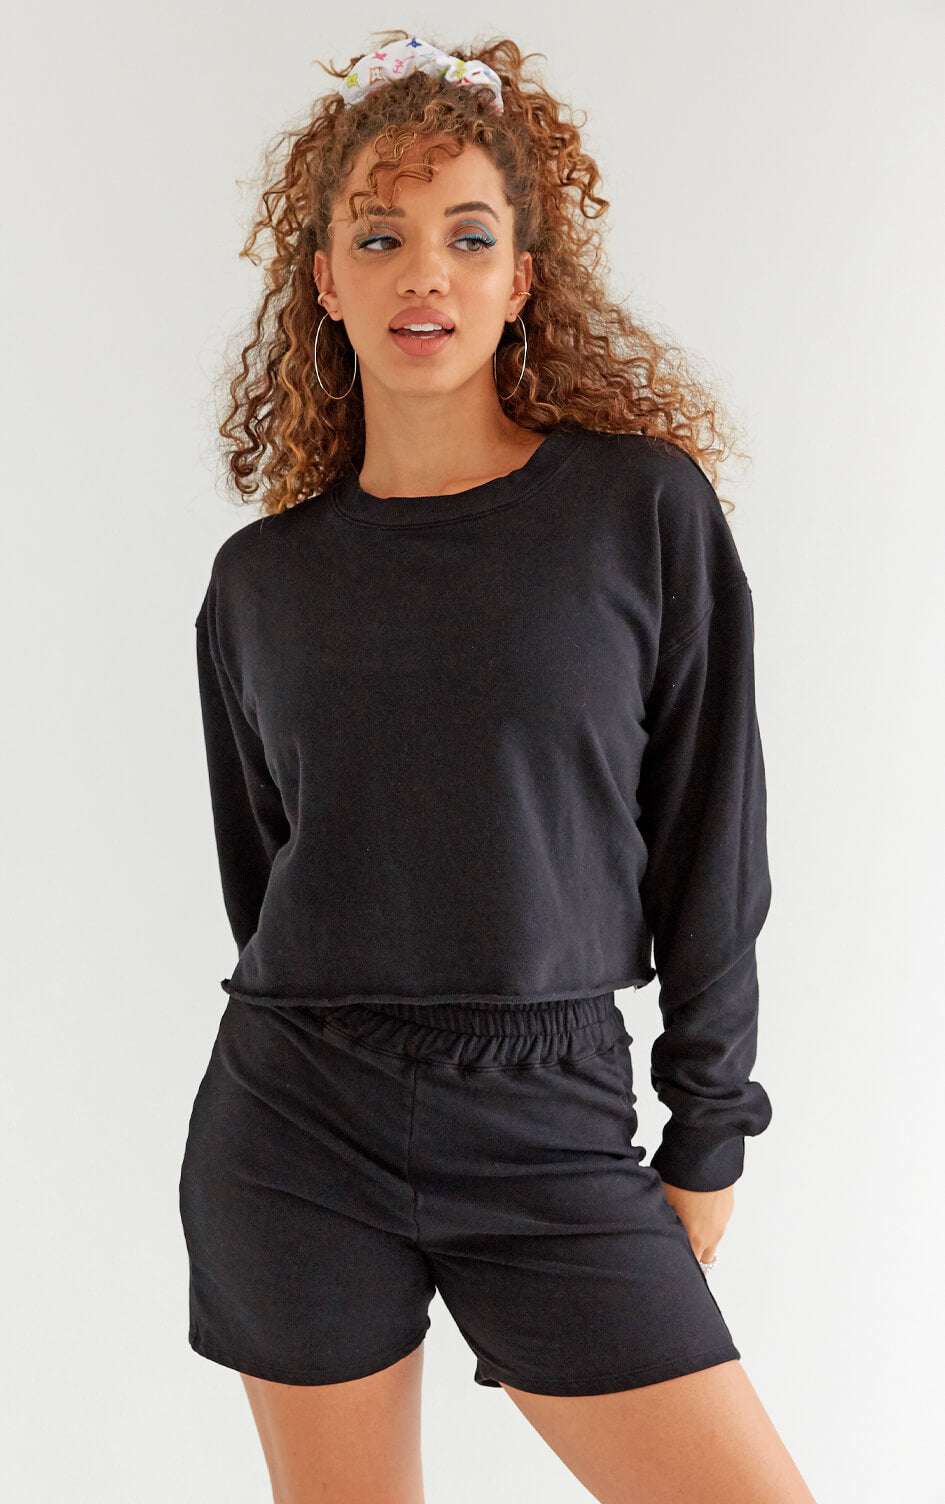 shop-dana-scott-black-out-collection-black-cropped-fleece-sweatshirt-